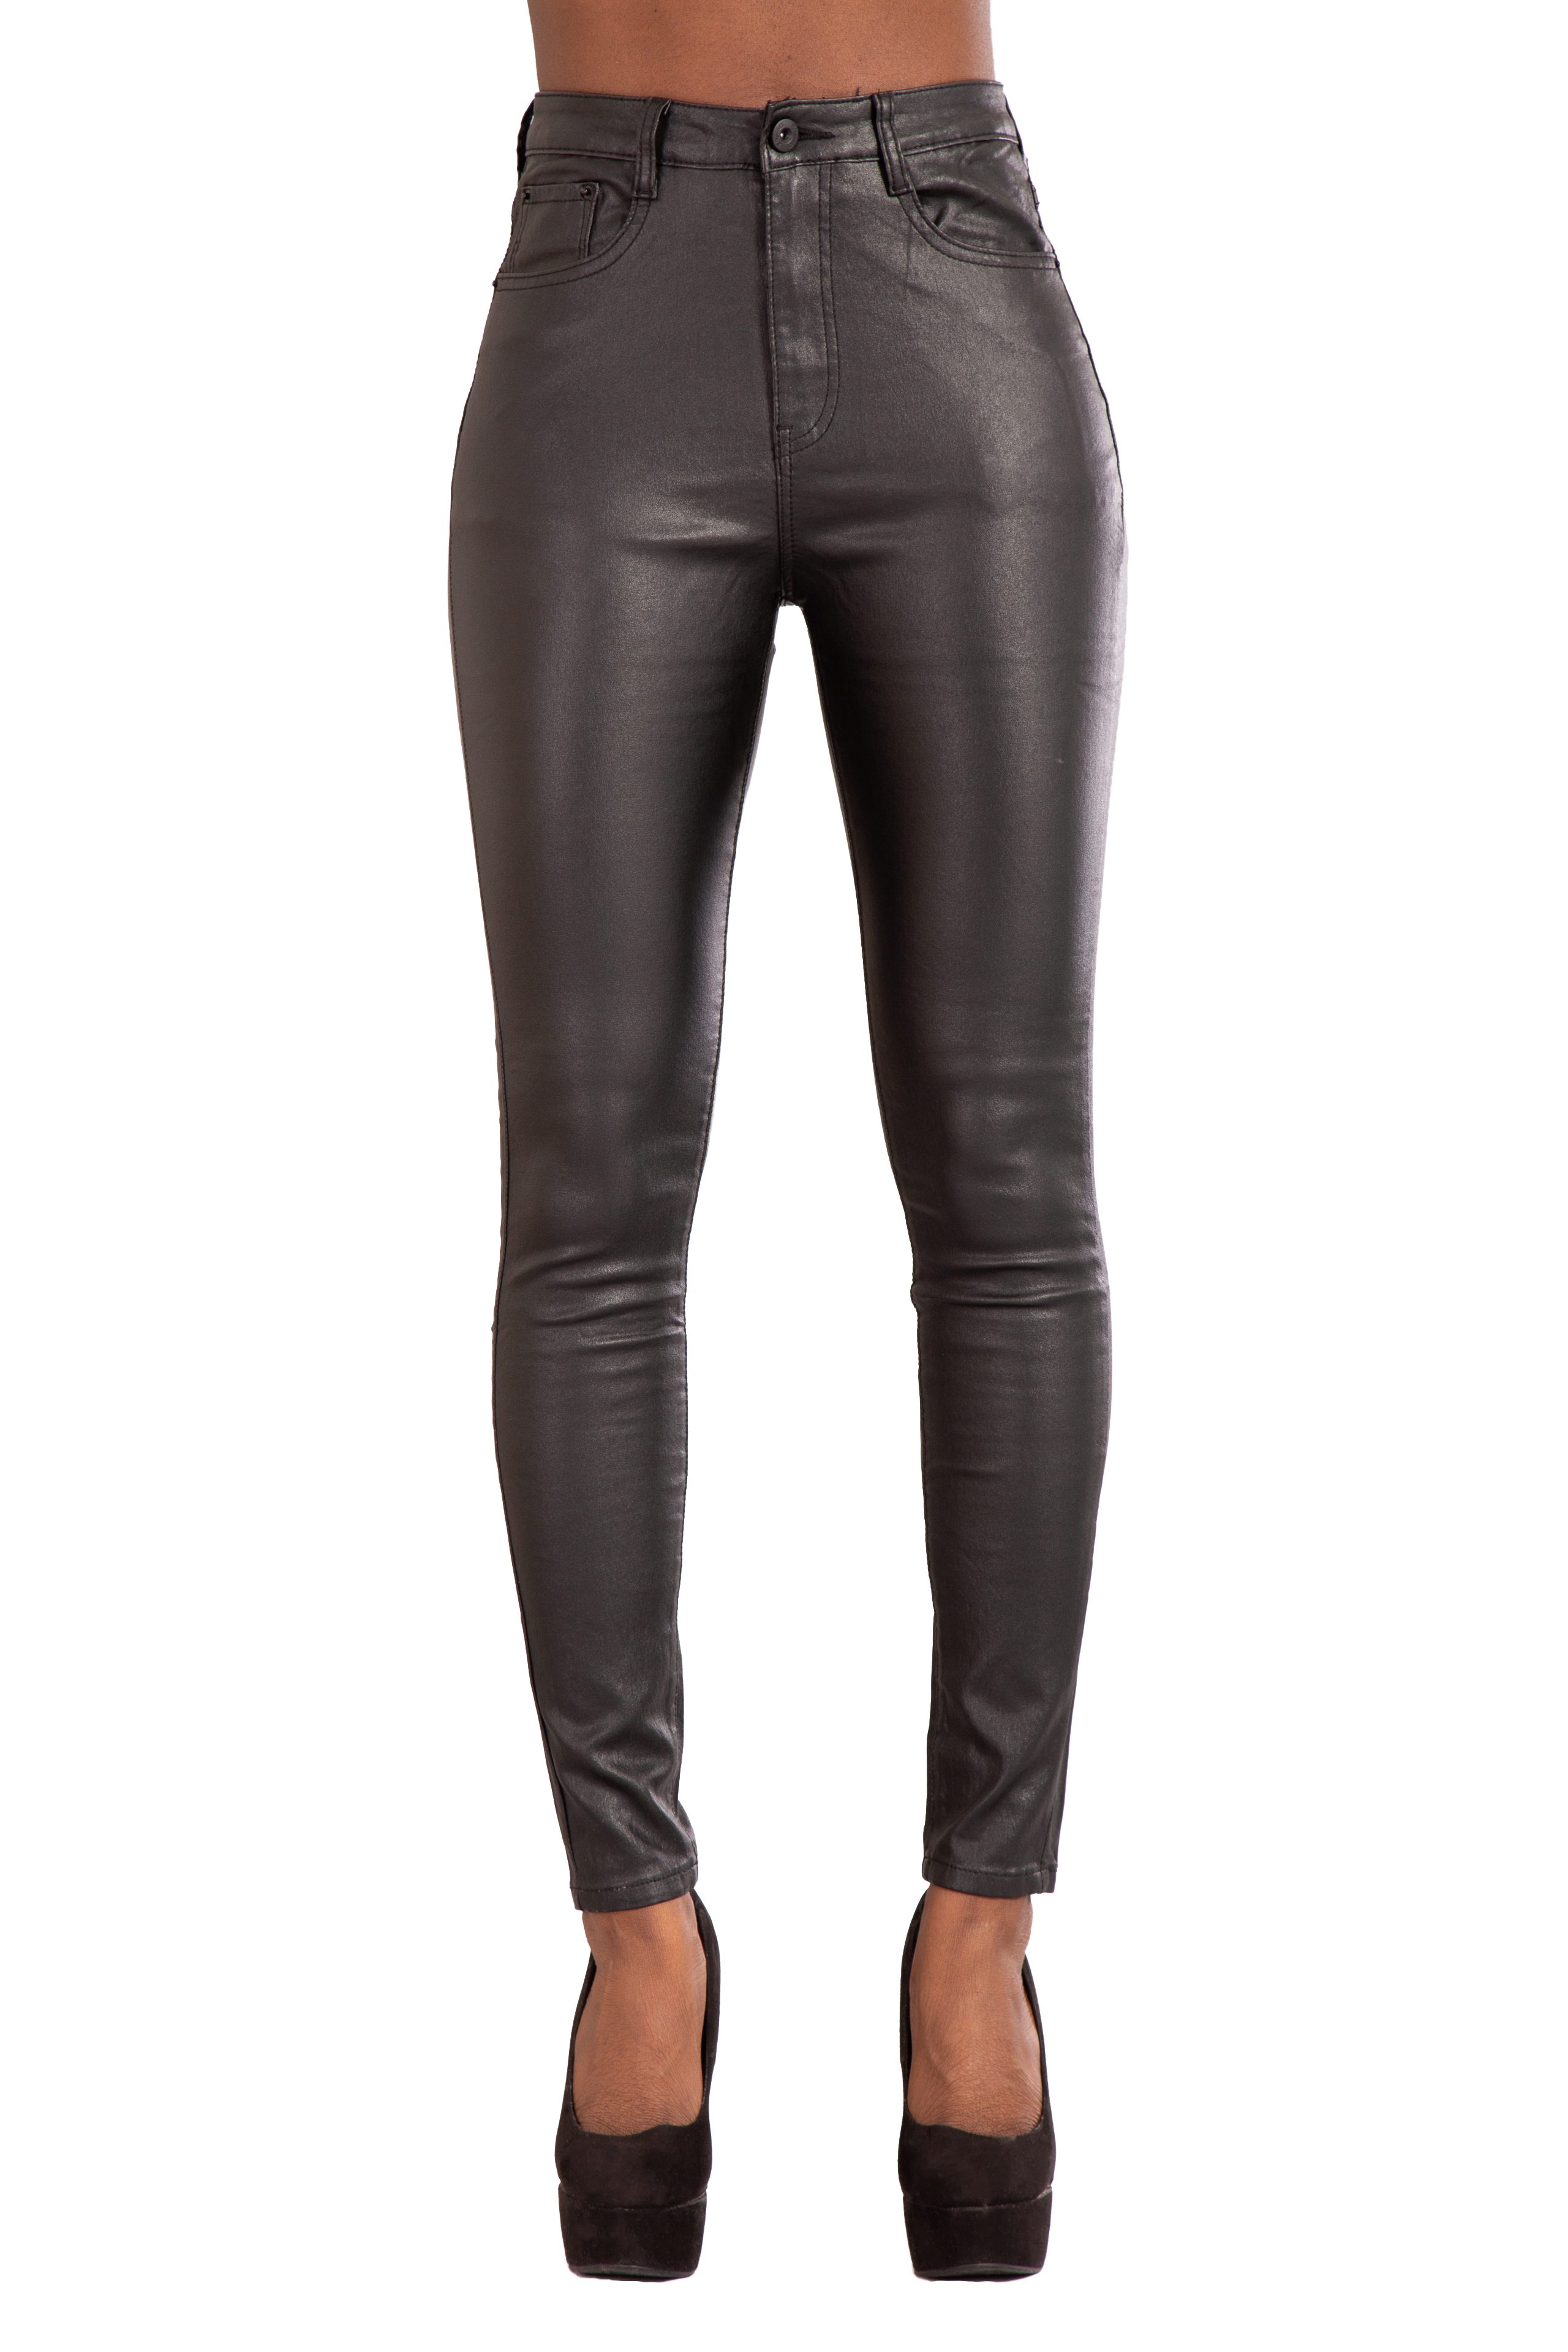 big collection new season great varieties Details about Women High Waist Leather Look Leggings Trousers Ladies Plus  Size Jeans Uk 10-20